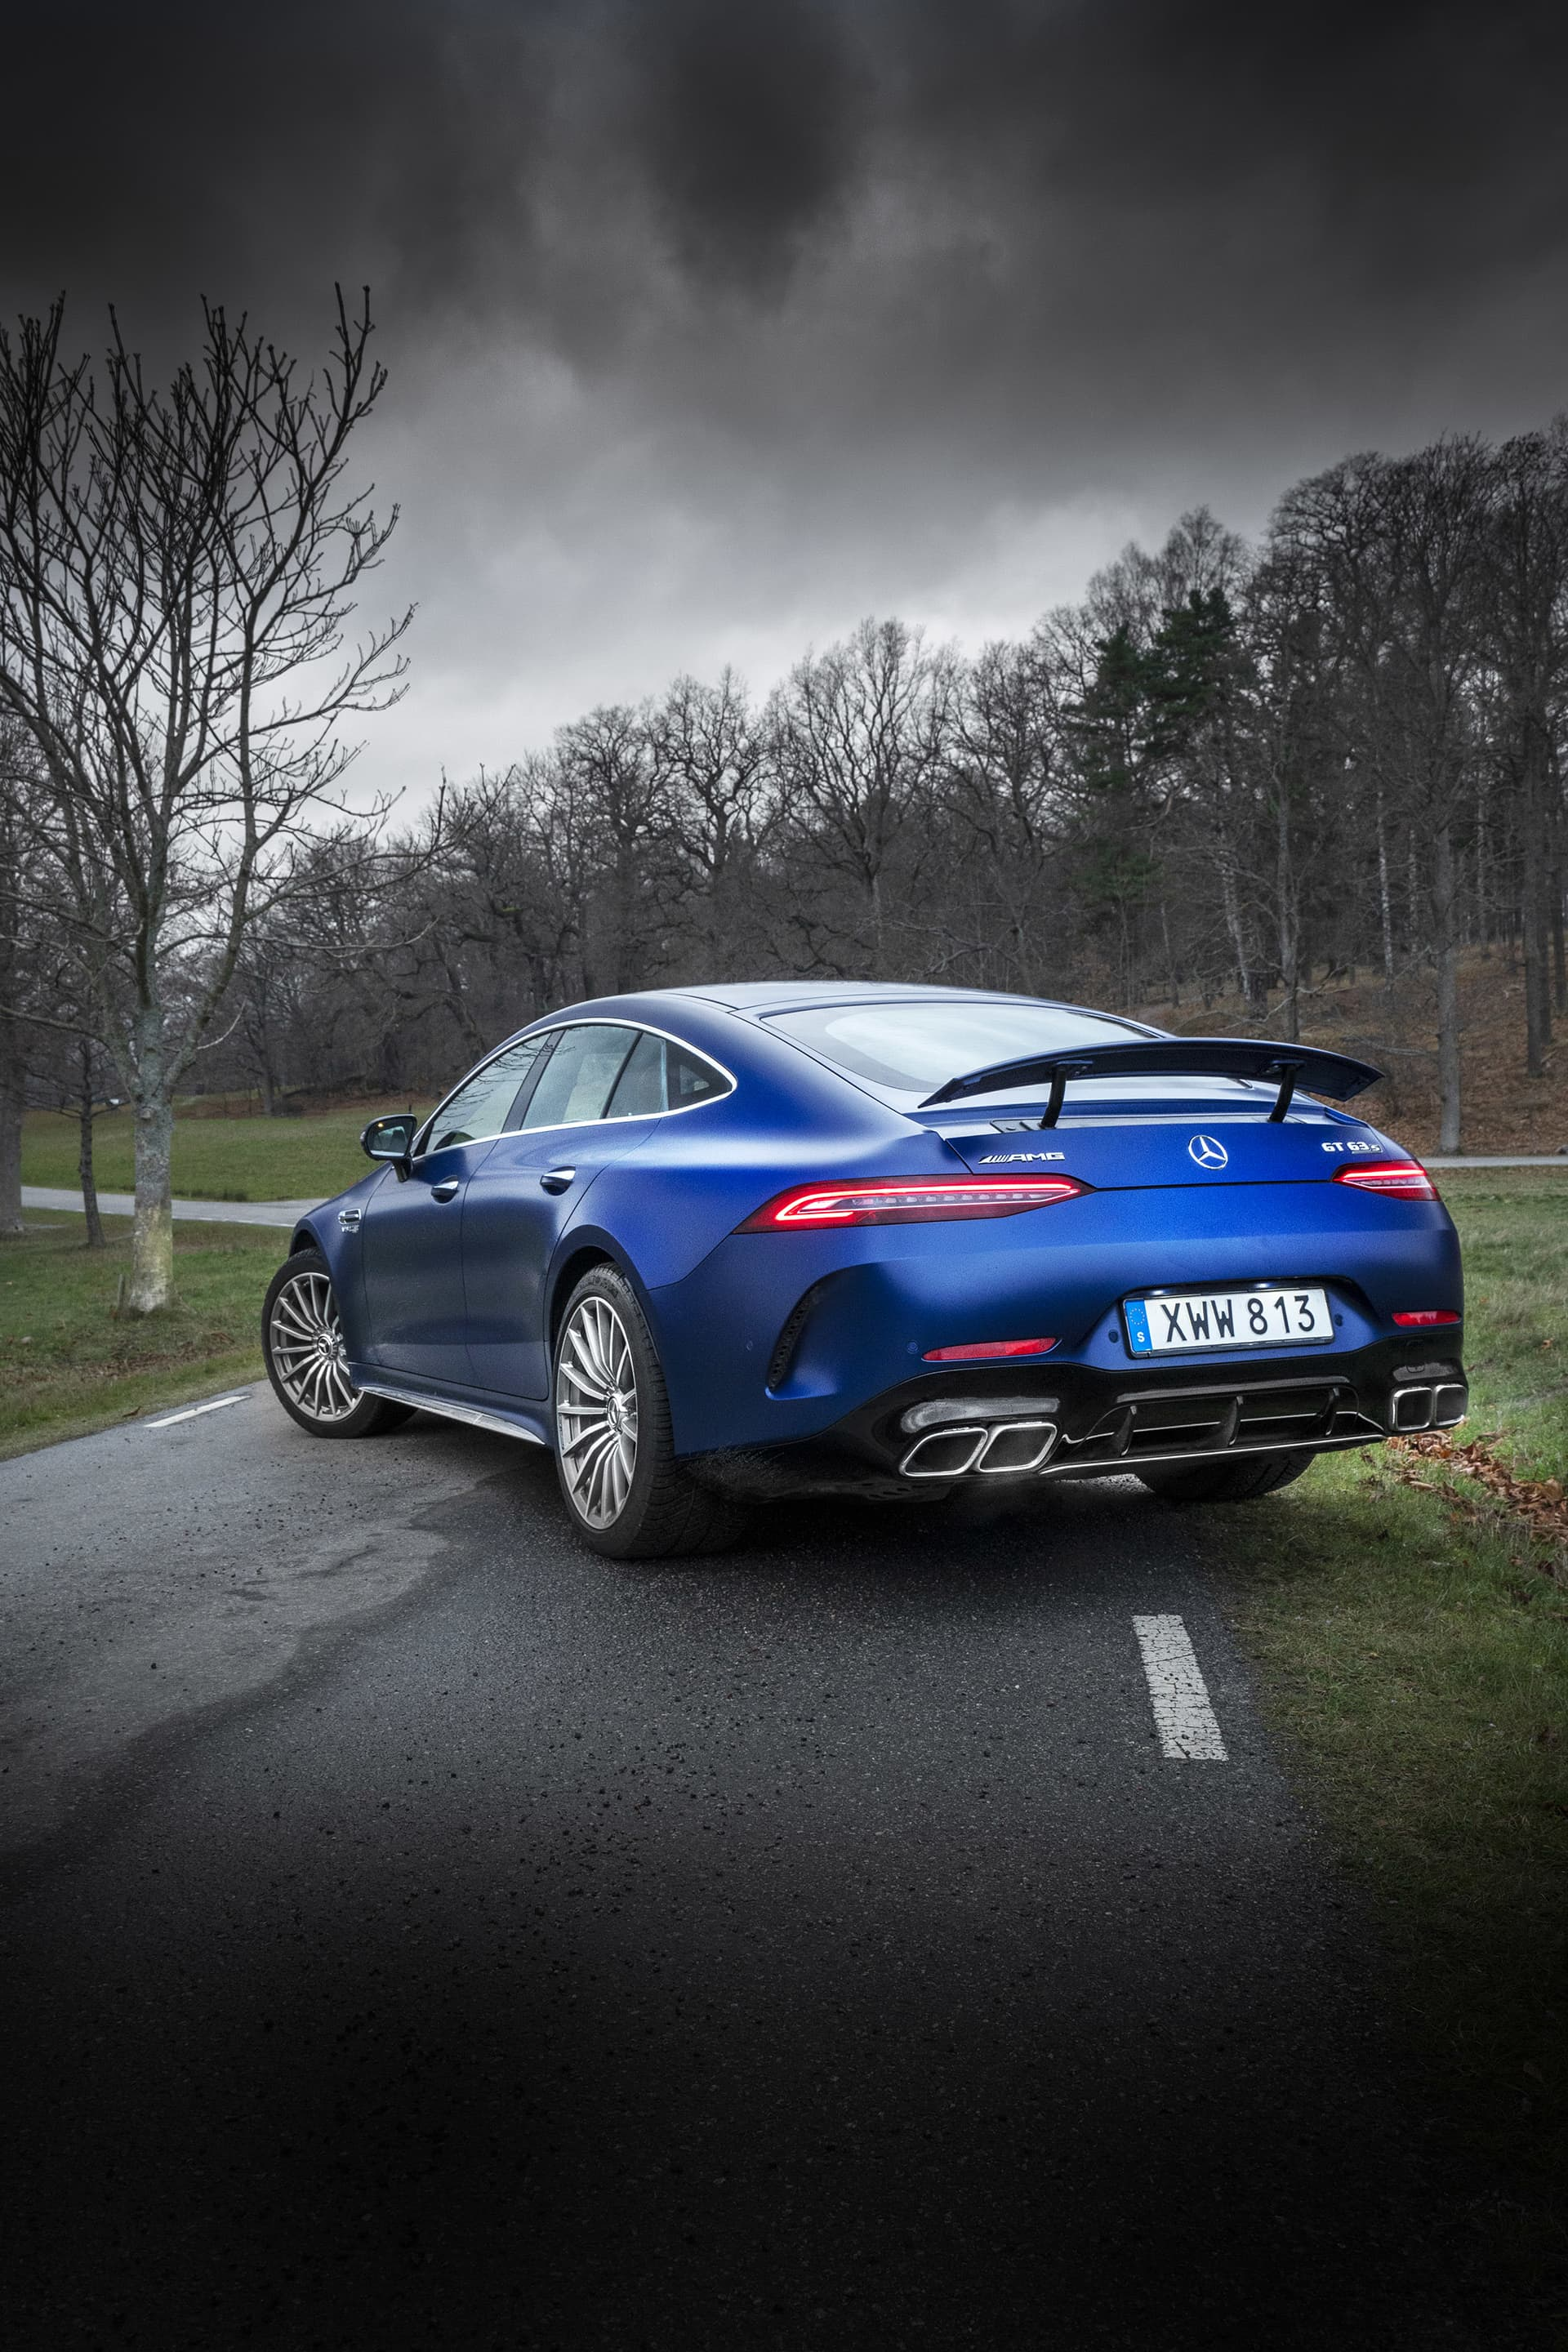 With the wing up and the quad exhausts that sing a beautiful song, the AMG GT63s is in a class of its own. If it is a 'Panamera killer' I leave unsaid, as opinions will differ too greatly…